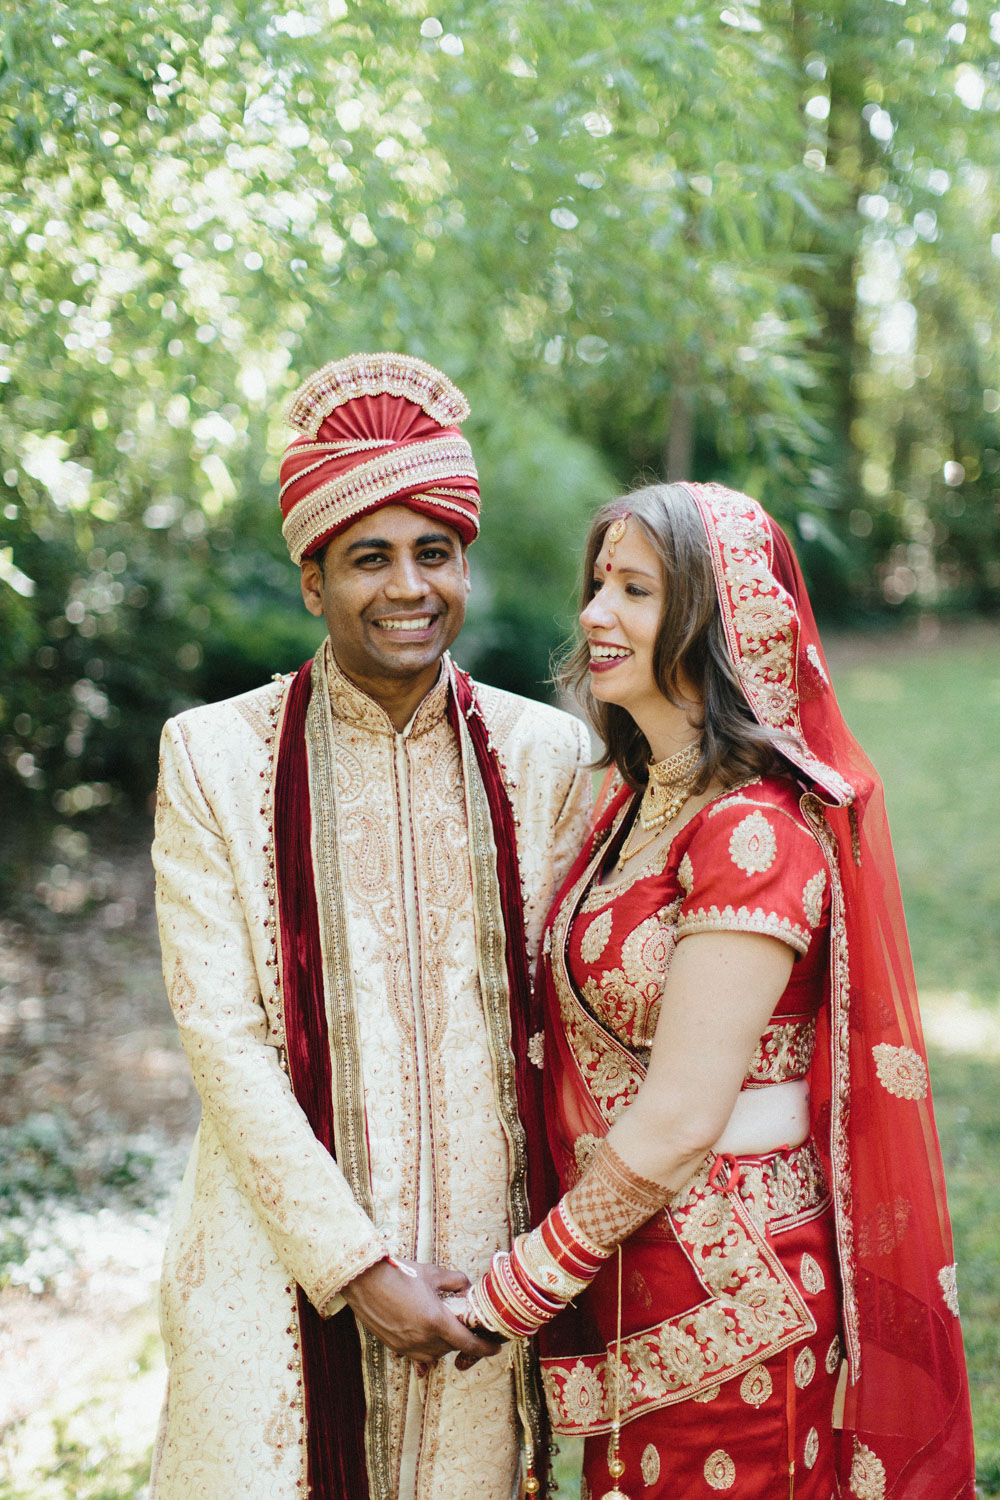 backyard_indian_wedding_roswell_atlanta_georgia_wedding_photographers-450.jpg